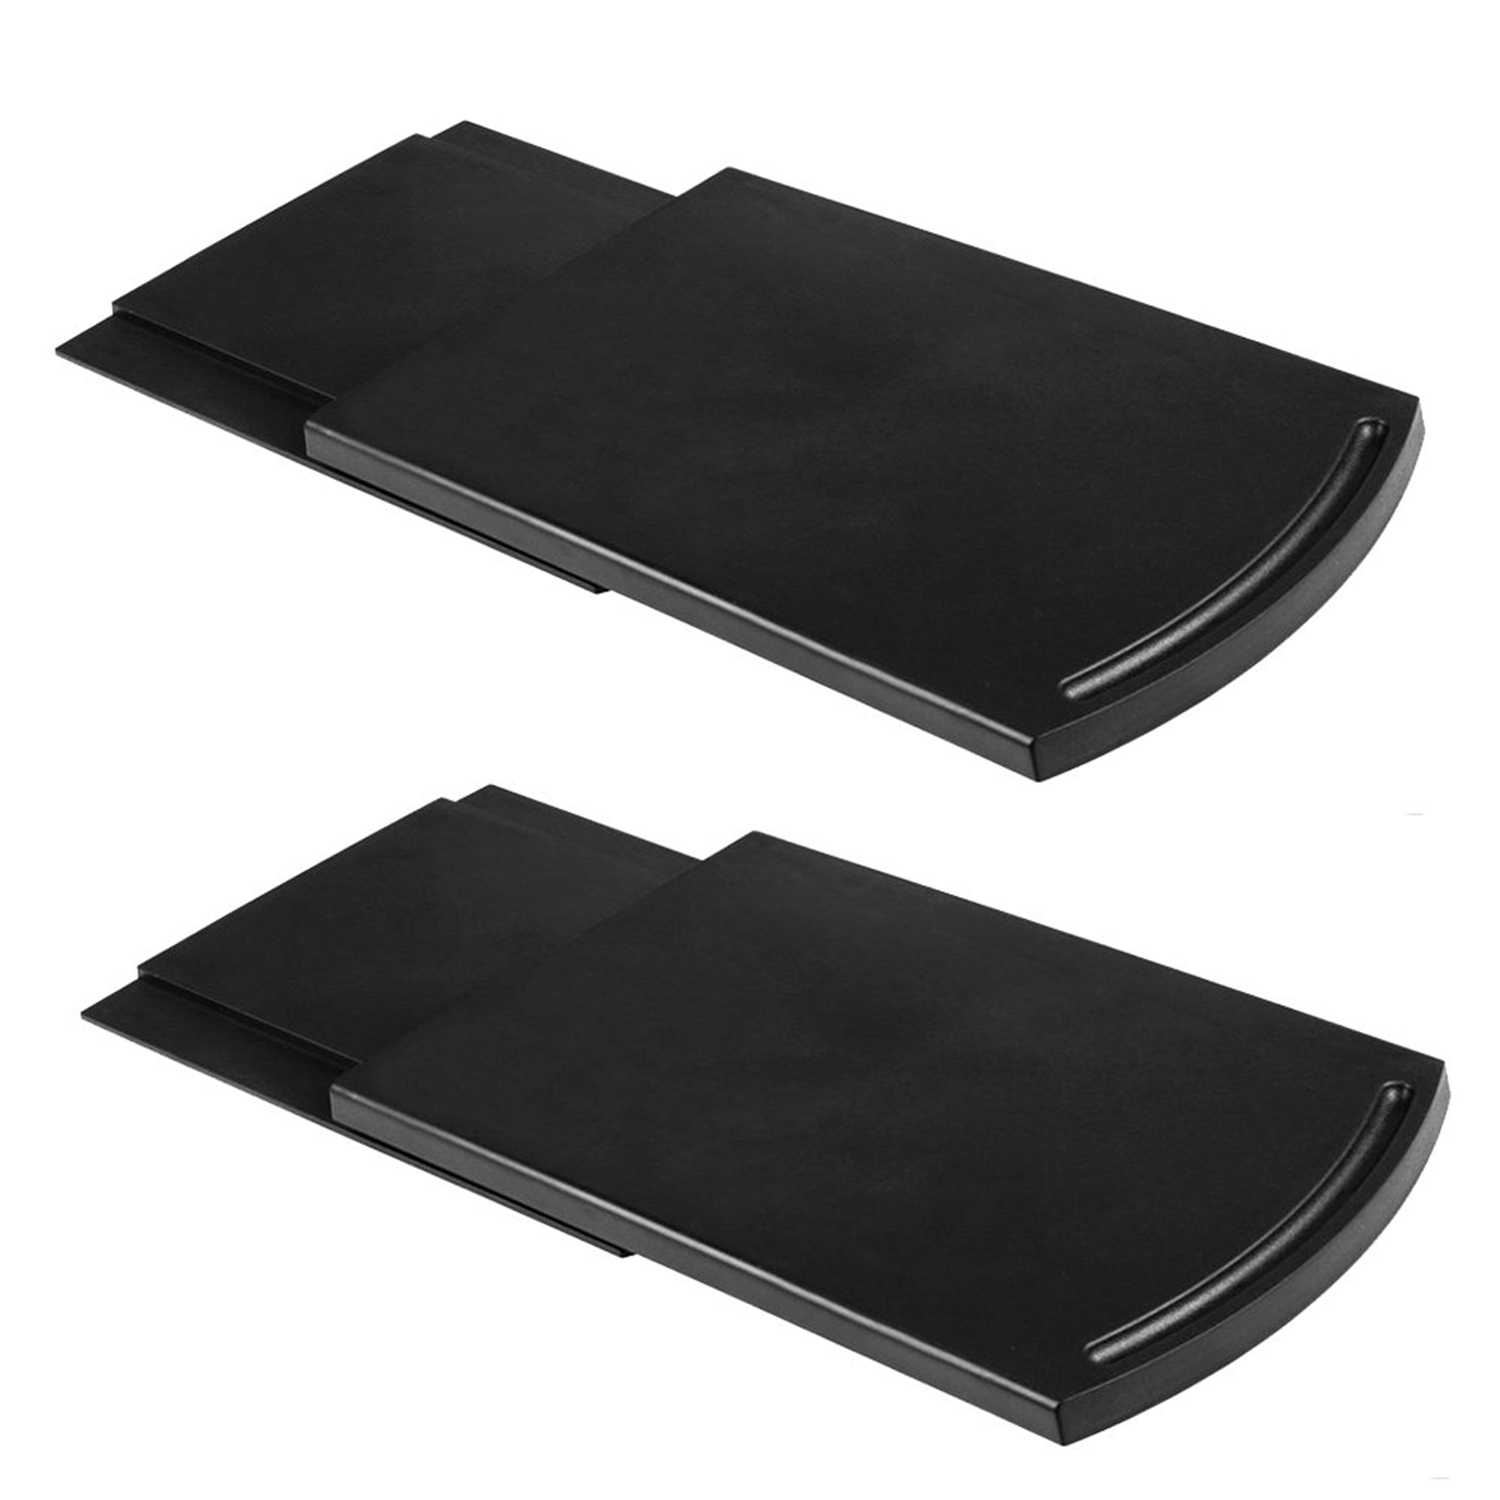 Home Appliance Parts Kitchen Caddy Sliding Coffee Tray Mat,12 Inch Under Cabinet Appliance Coffee Maker Toaster Countertop Storage Moving Slider Wi Buy One Get One Free